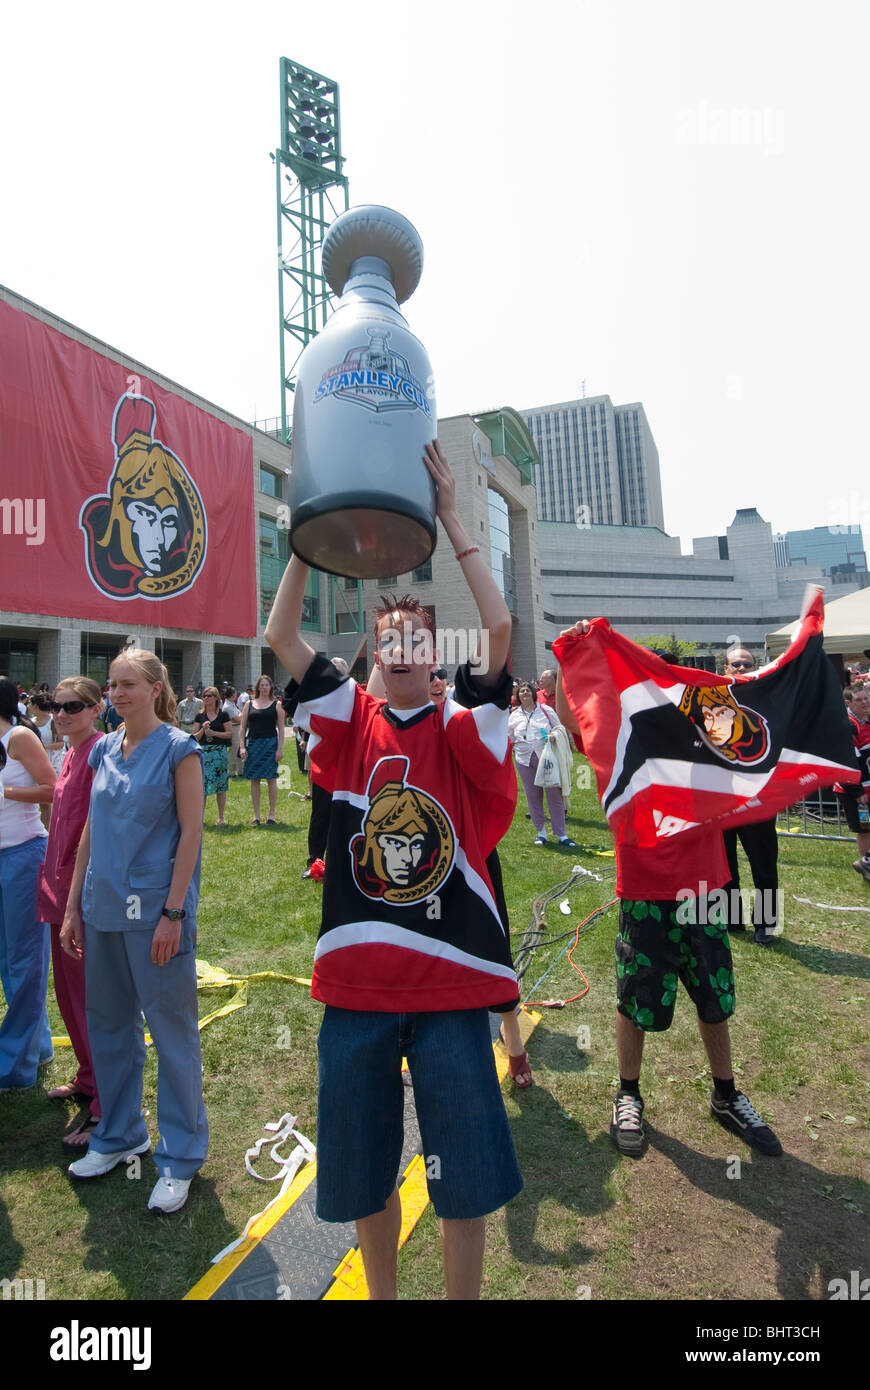 An inflatable Stanley Cup is held high by an Ottawa Senators fan at a rally  for the Stanley Cup Finals bound team May 24th 2007. 4f6013b596a4